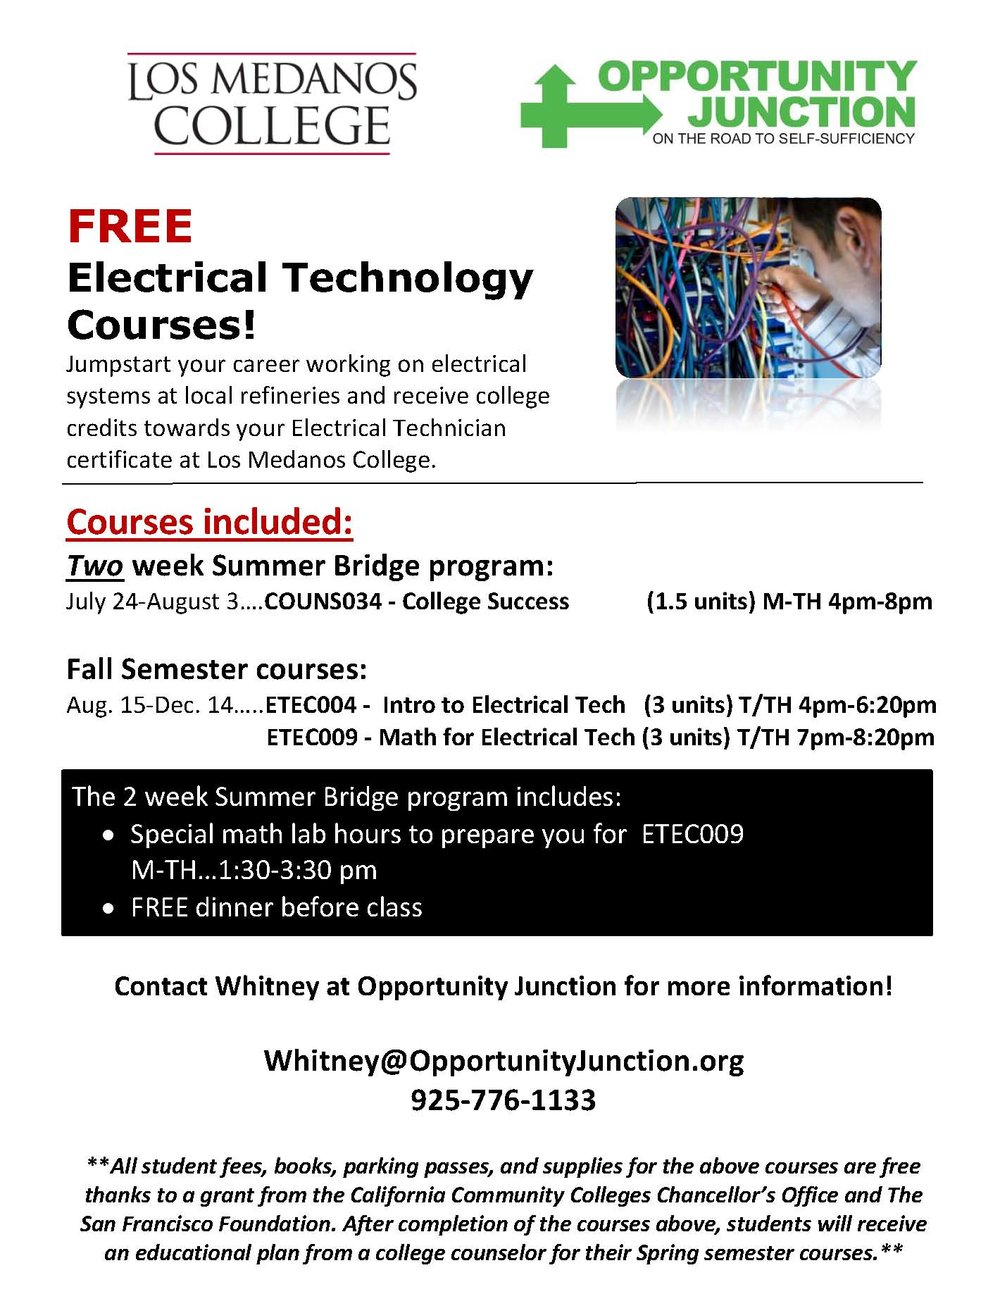 FREEETechCourses(jpeg).jpg